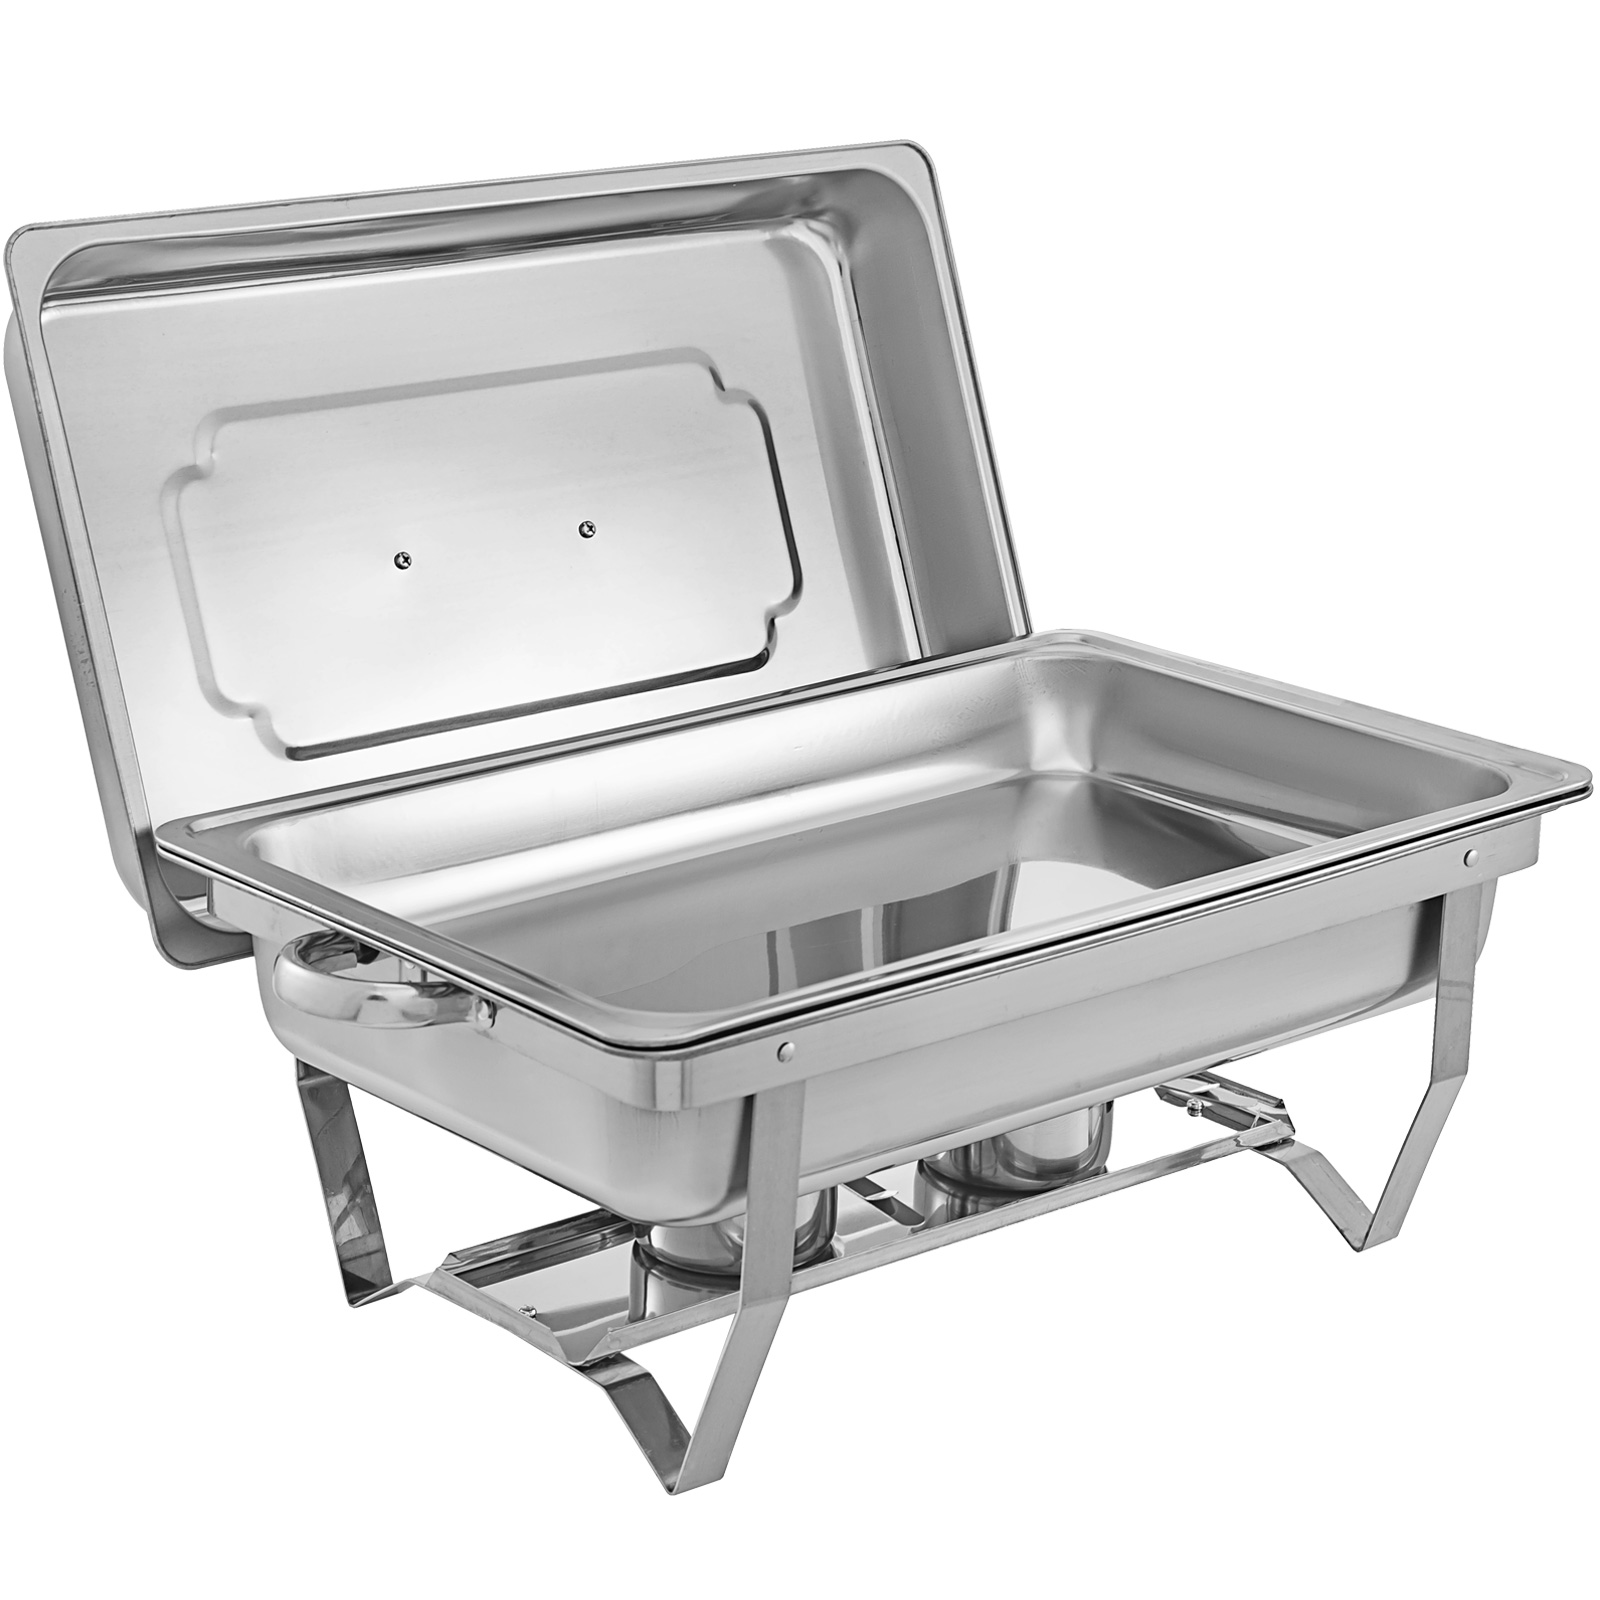 thumbnail 59 - Multi-Stainless-Steel-Chafing-Dish-Bain-Marie-Bow-Catering-Dish-Hotpot-Server